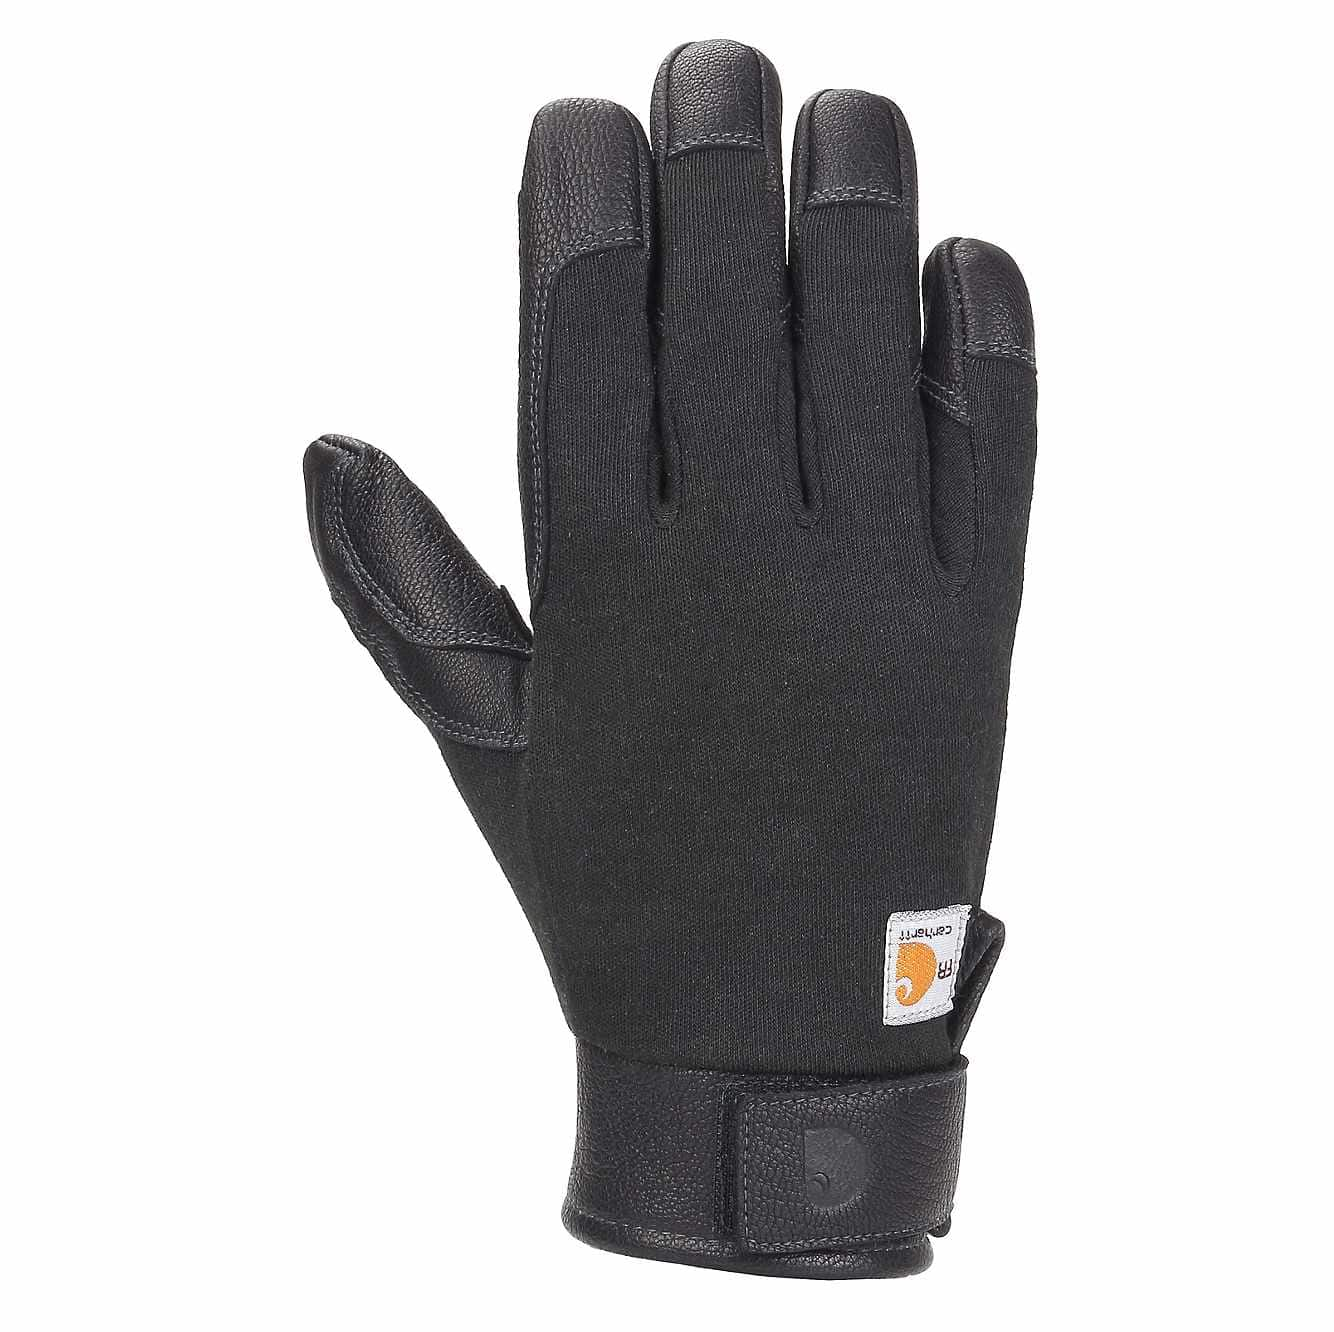 Picture of FR High Dexterity Glove in Black